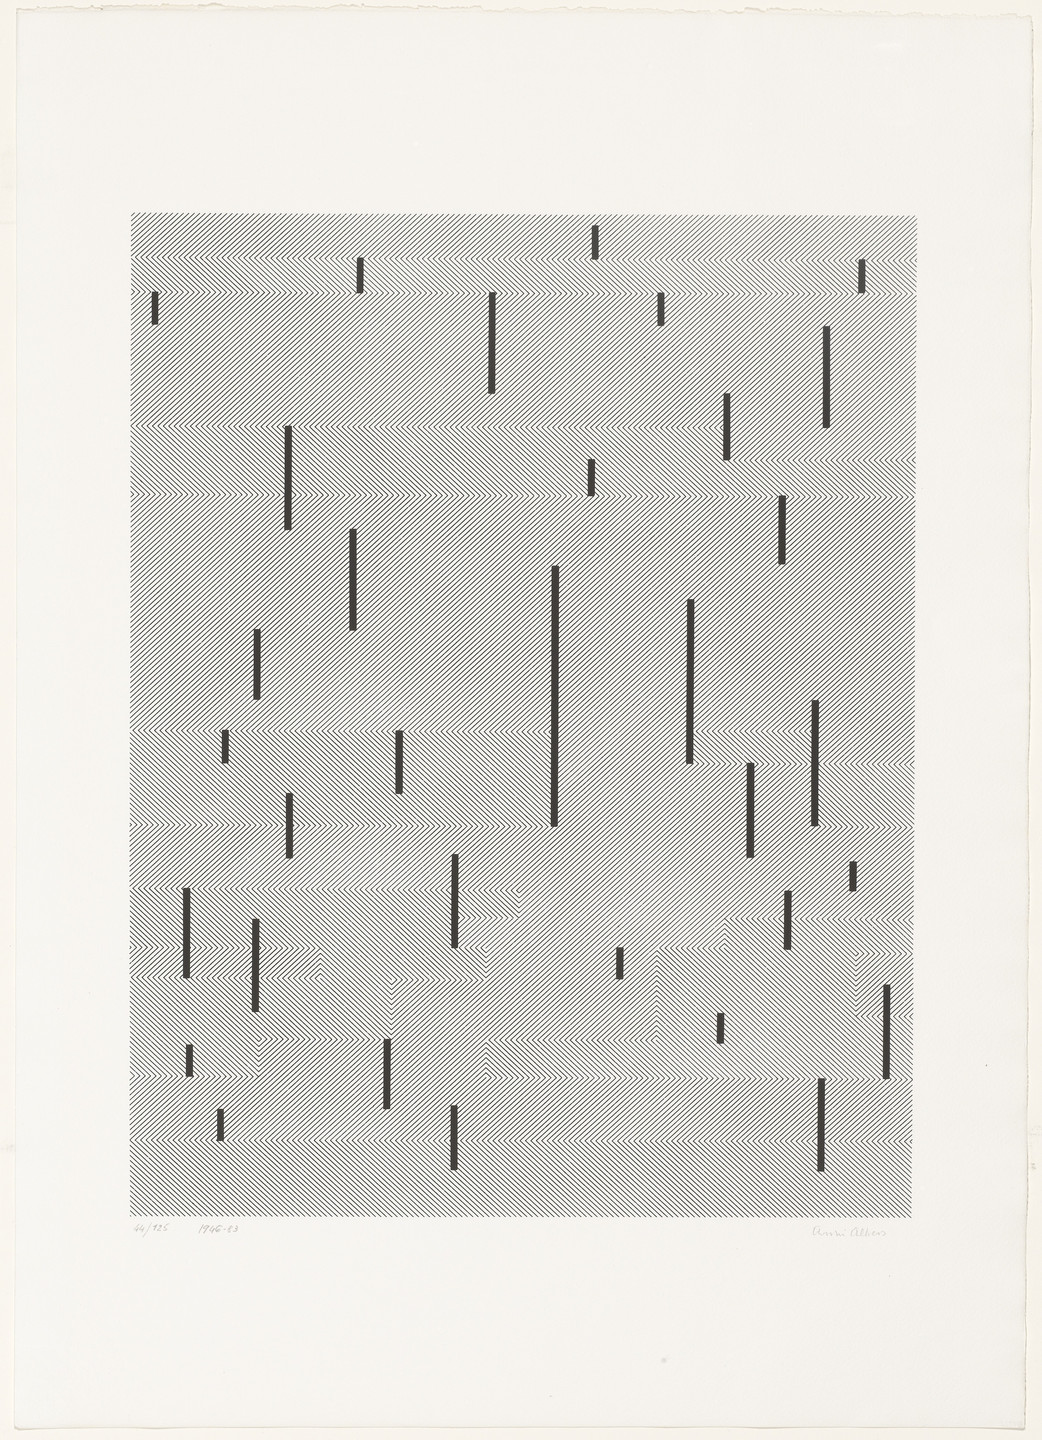 Anni Albers. With Verticals from Connections. 1983